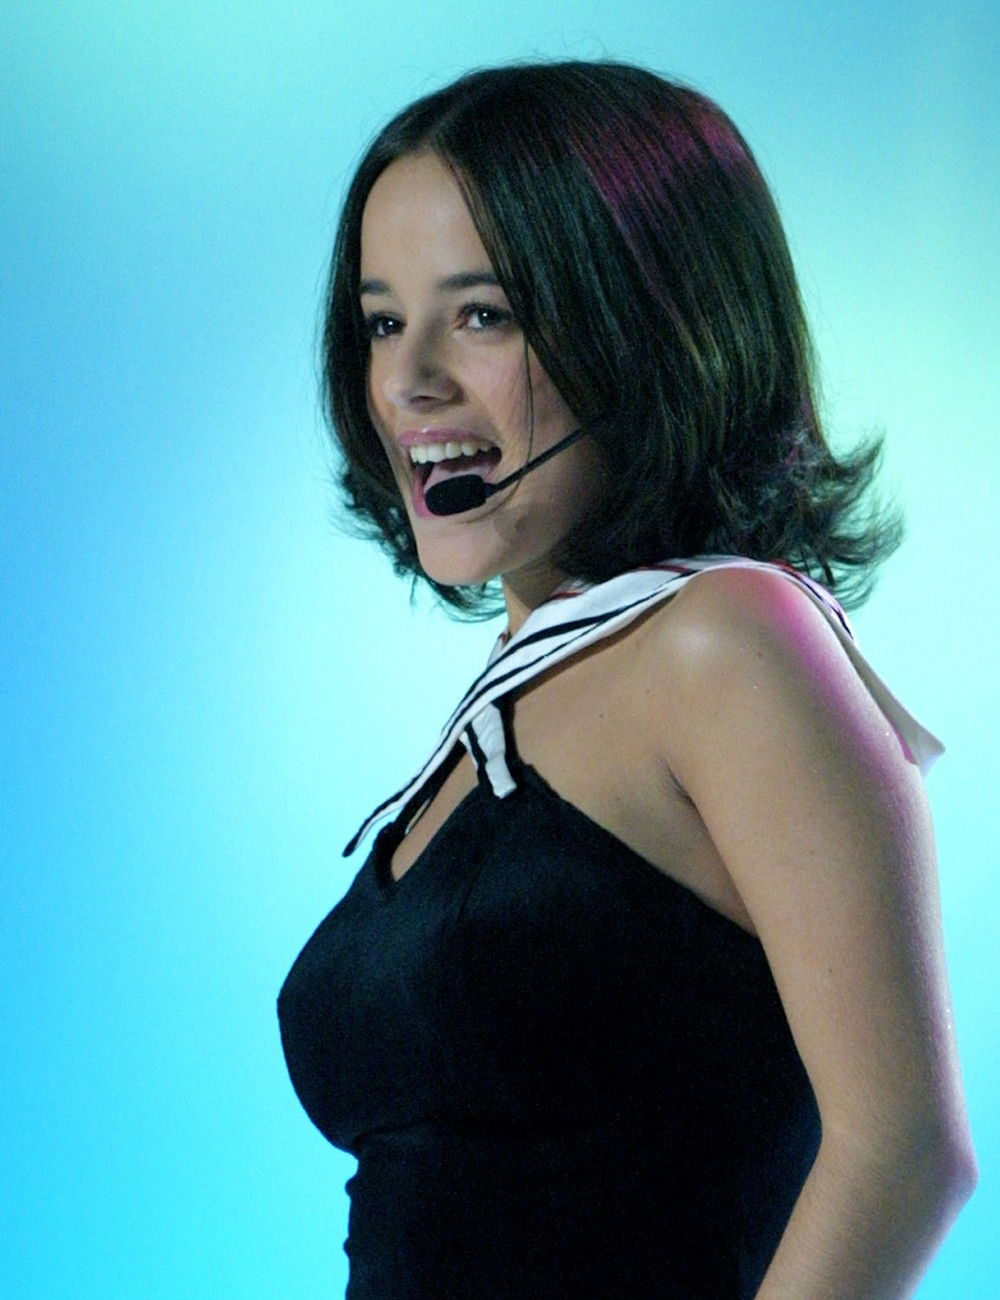 Alizee Pop Singer Glamour Photos | The Sexy Pics